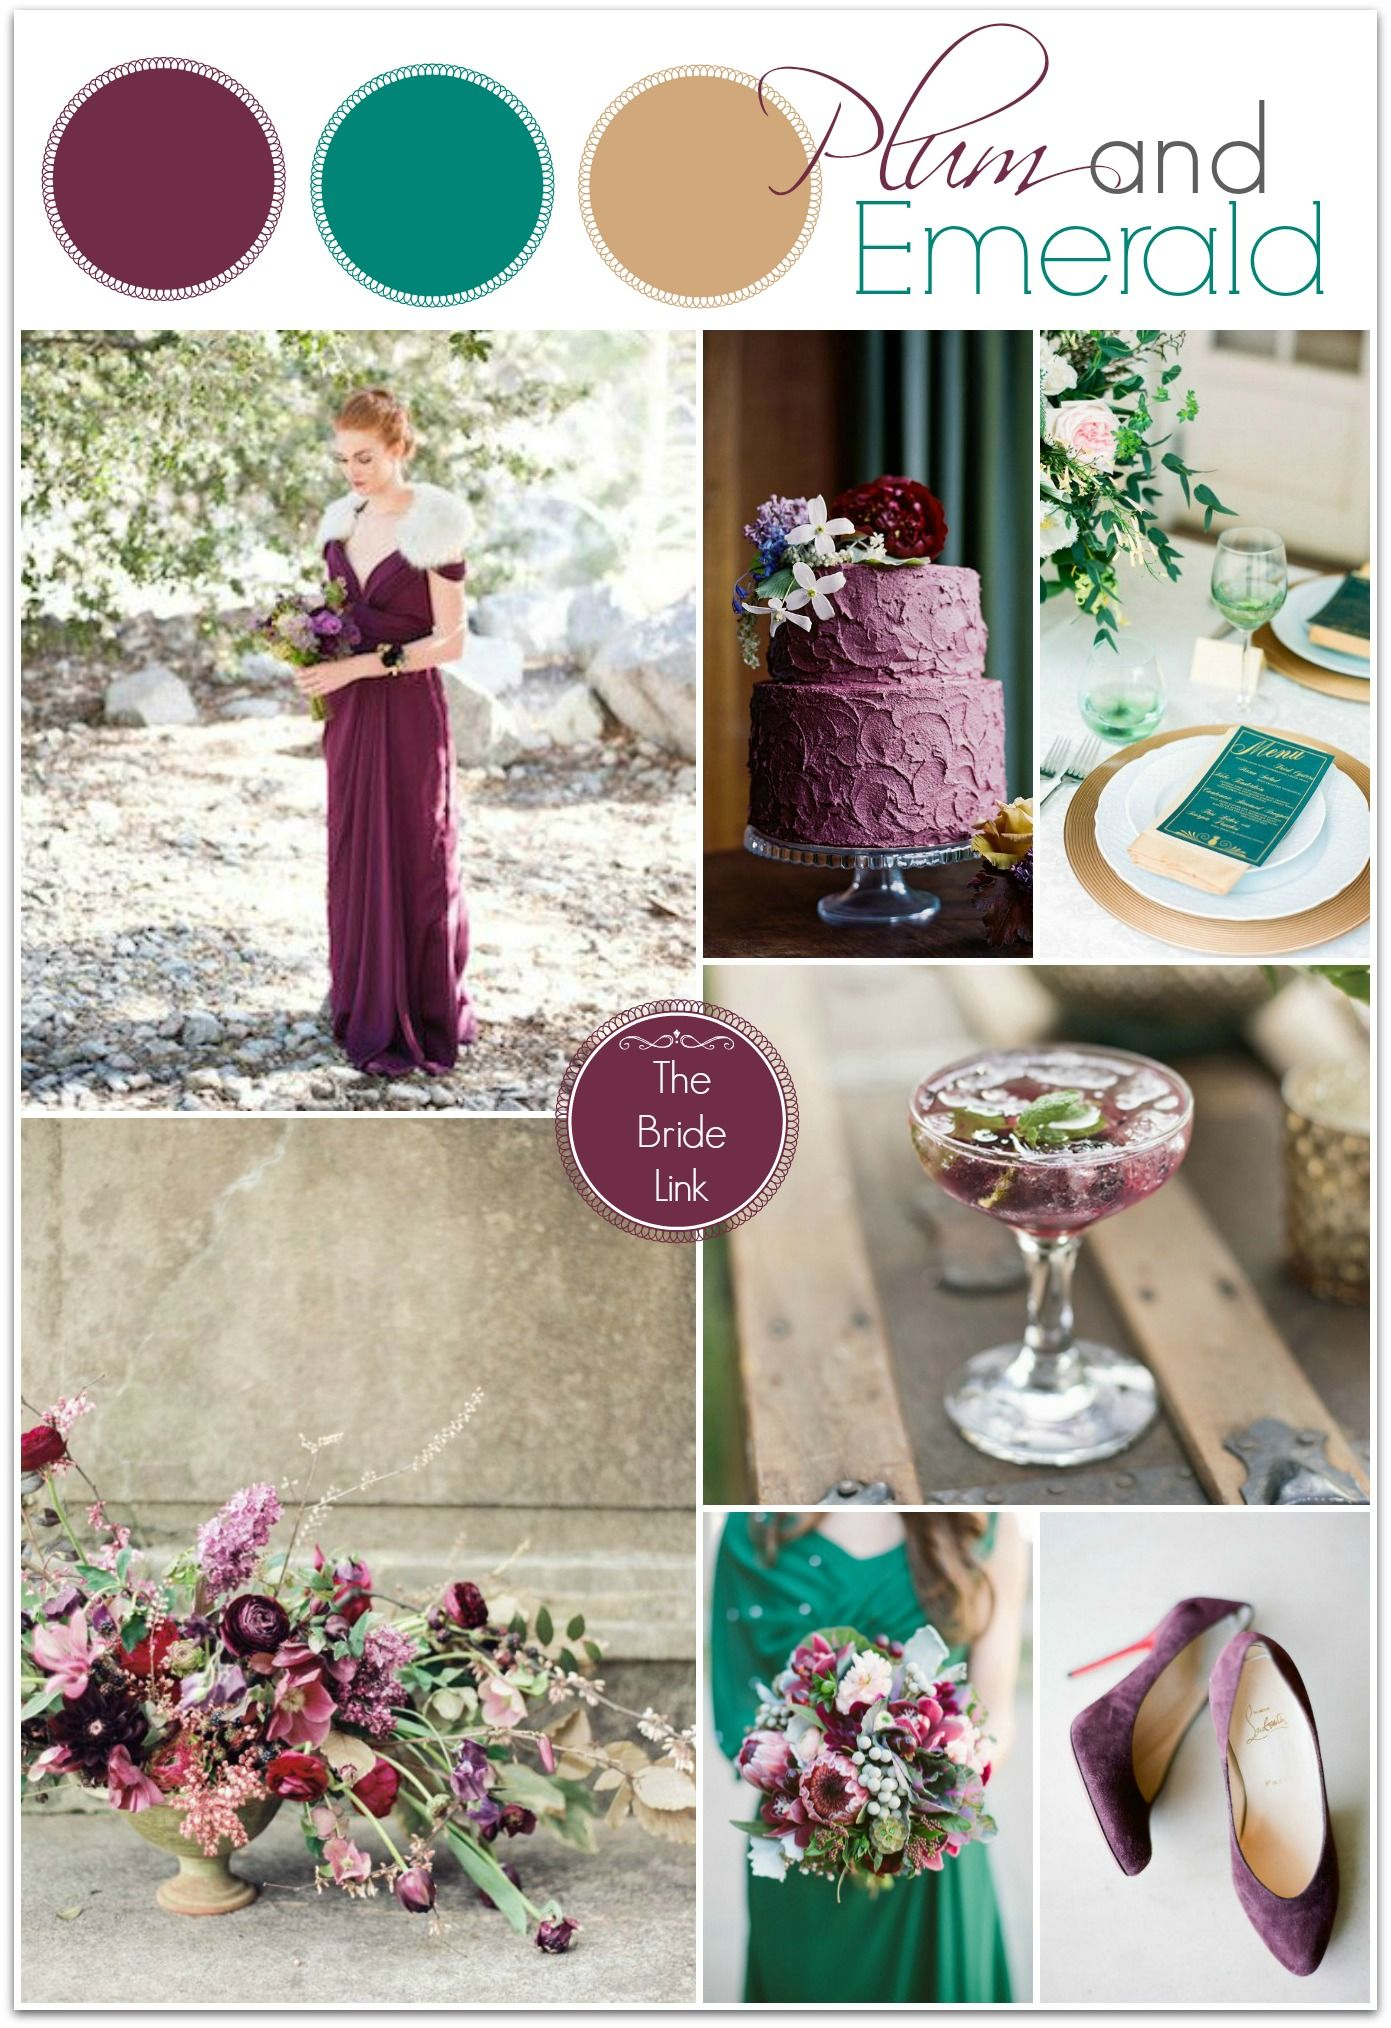 Plum and emerald wedding ideas winter weddings emeralds and color plum and emerald wedding color board todays plum and emerald color board is so classy and elegant but also fun and unique i love emerald with gold accents junglespirit Images